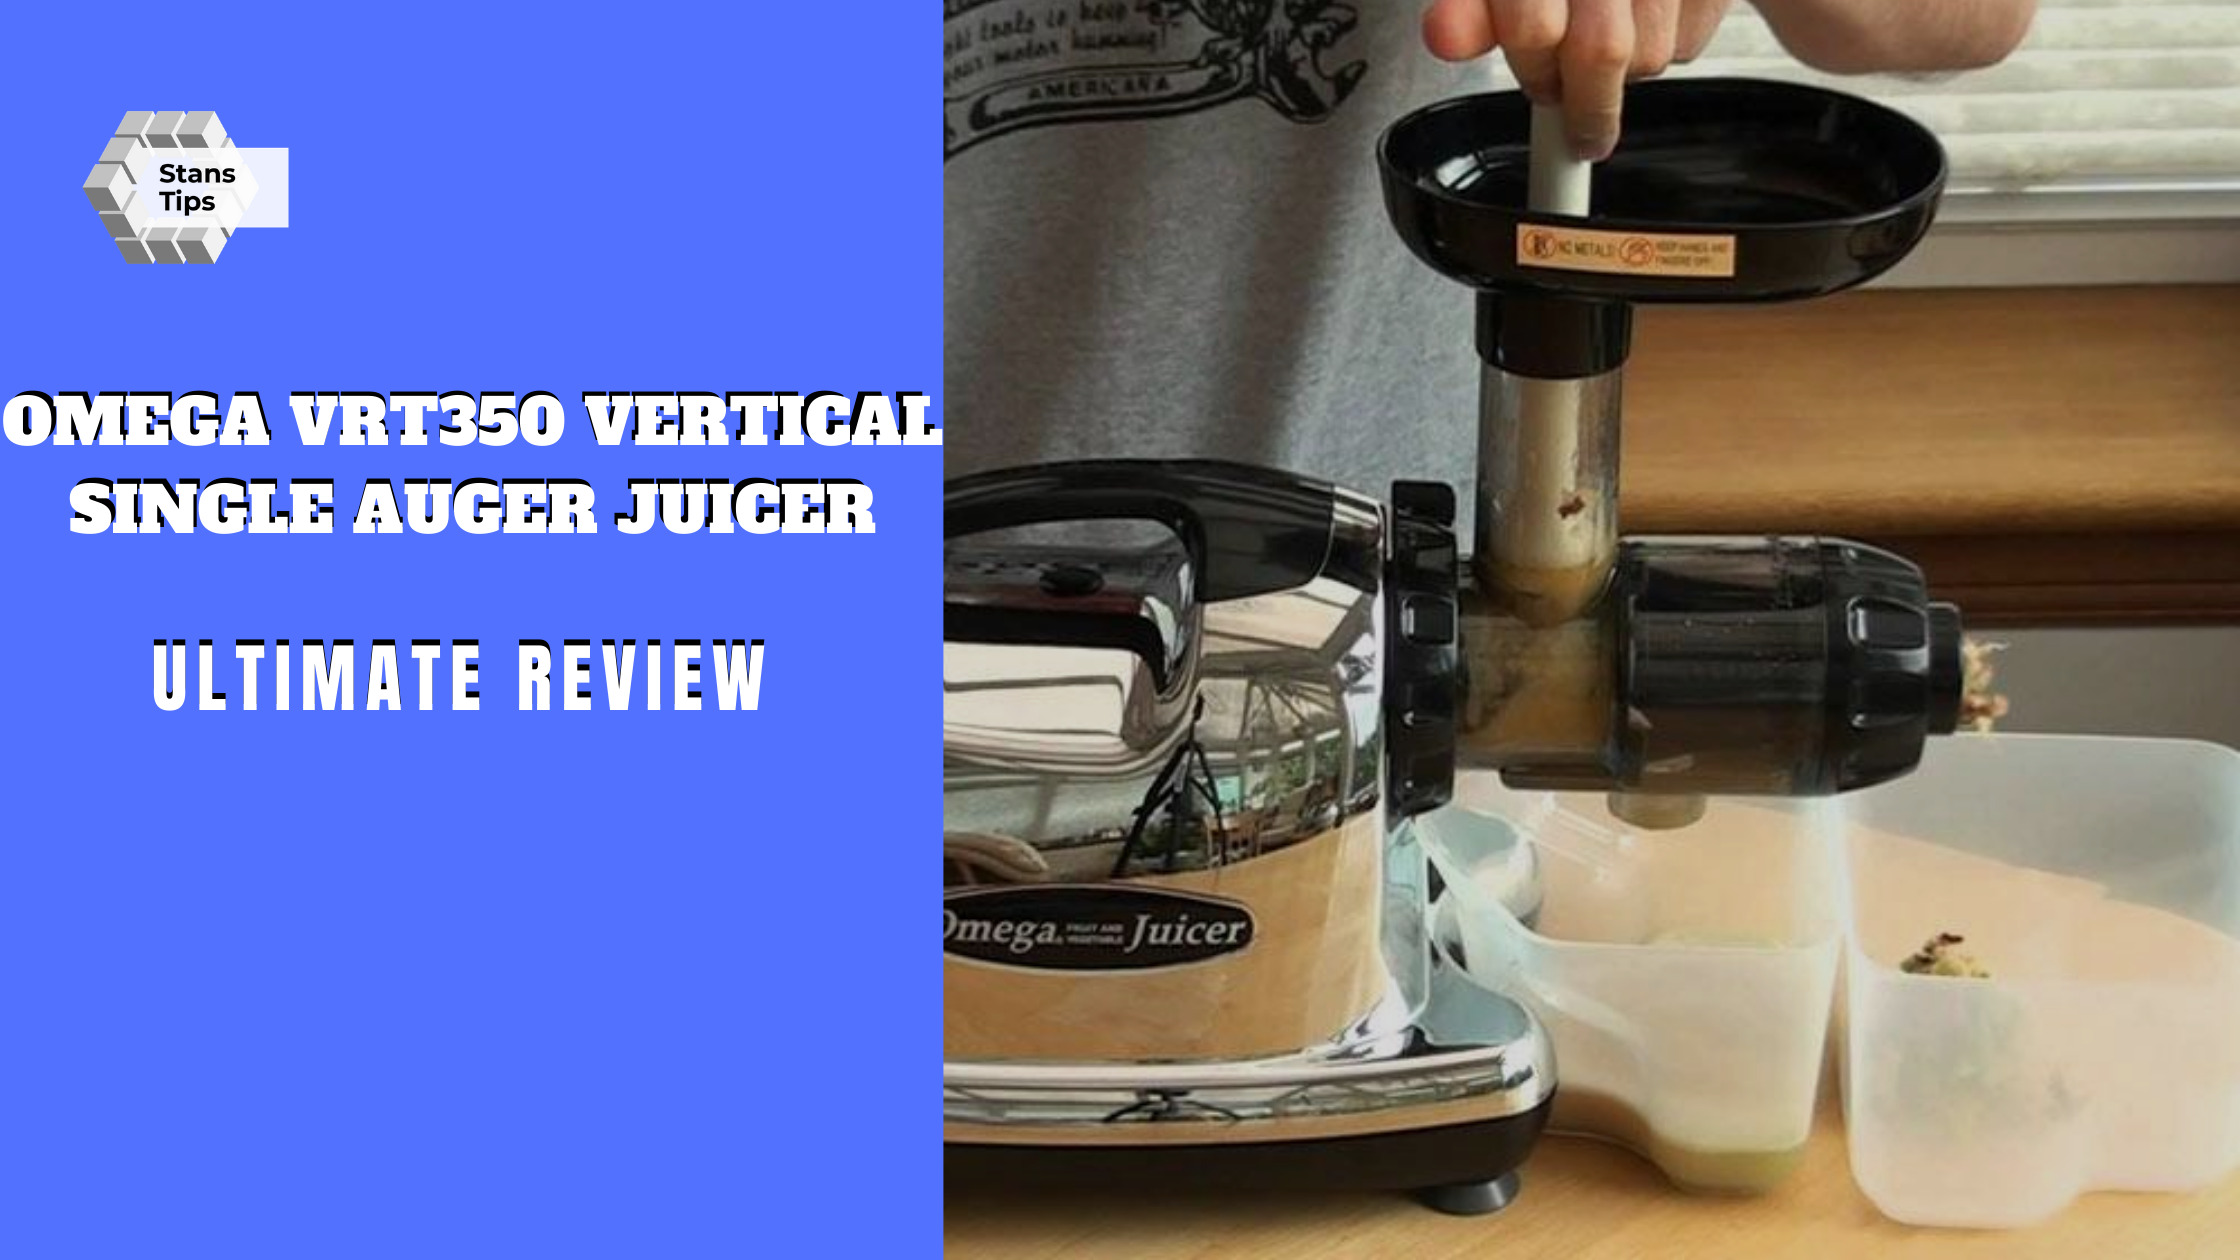 Omega vrt350 vertical single auger juicer review